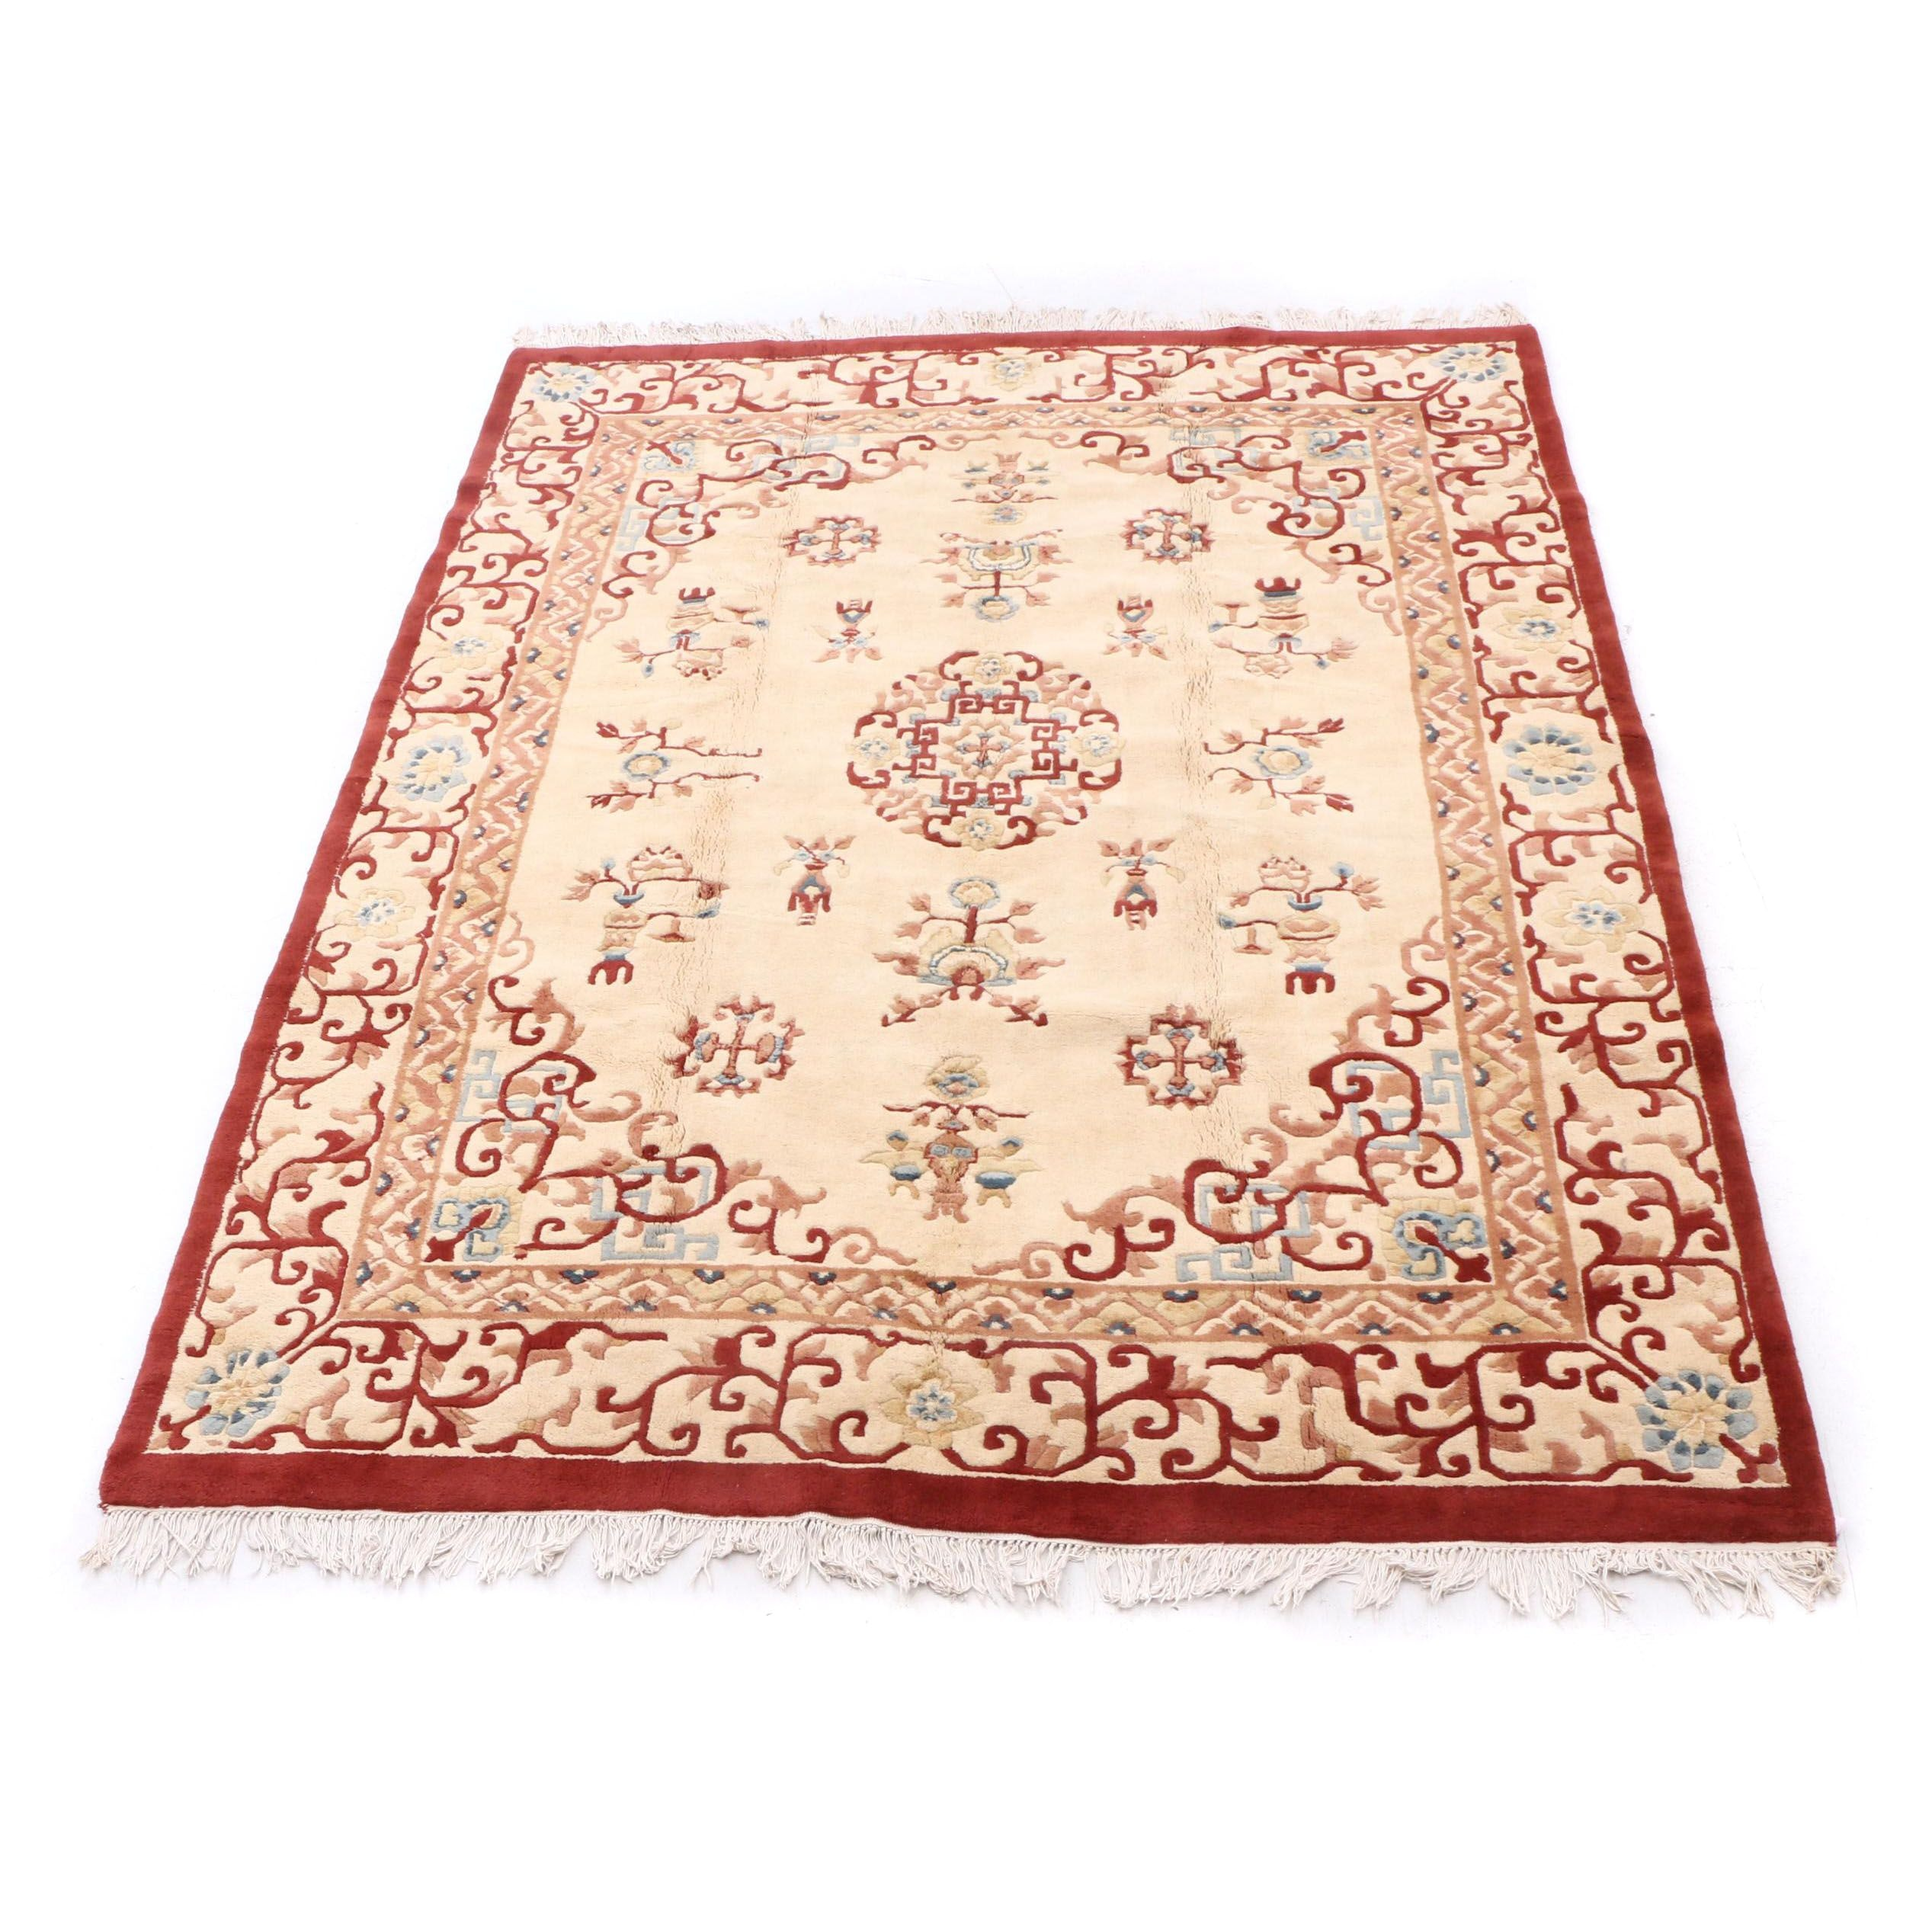 Hand-Knotted Indian Wool Room Sized Rug with Chinese Pattern